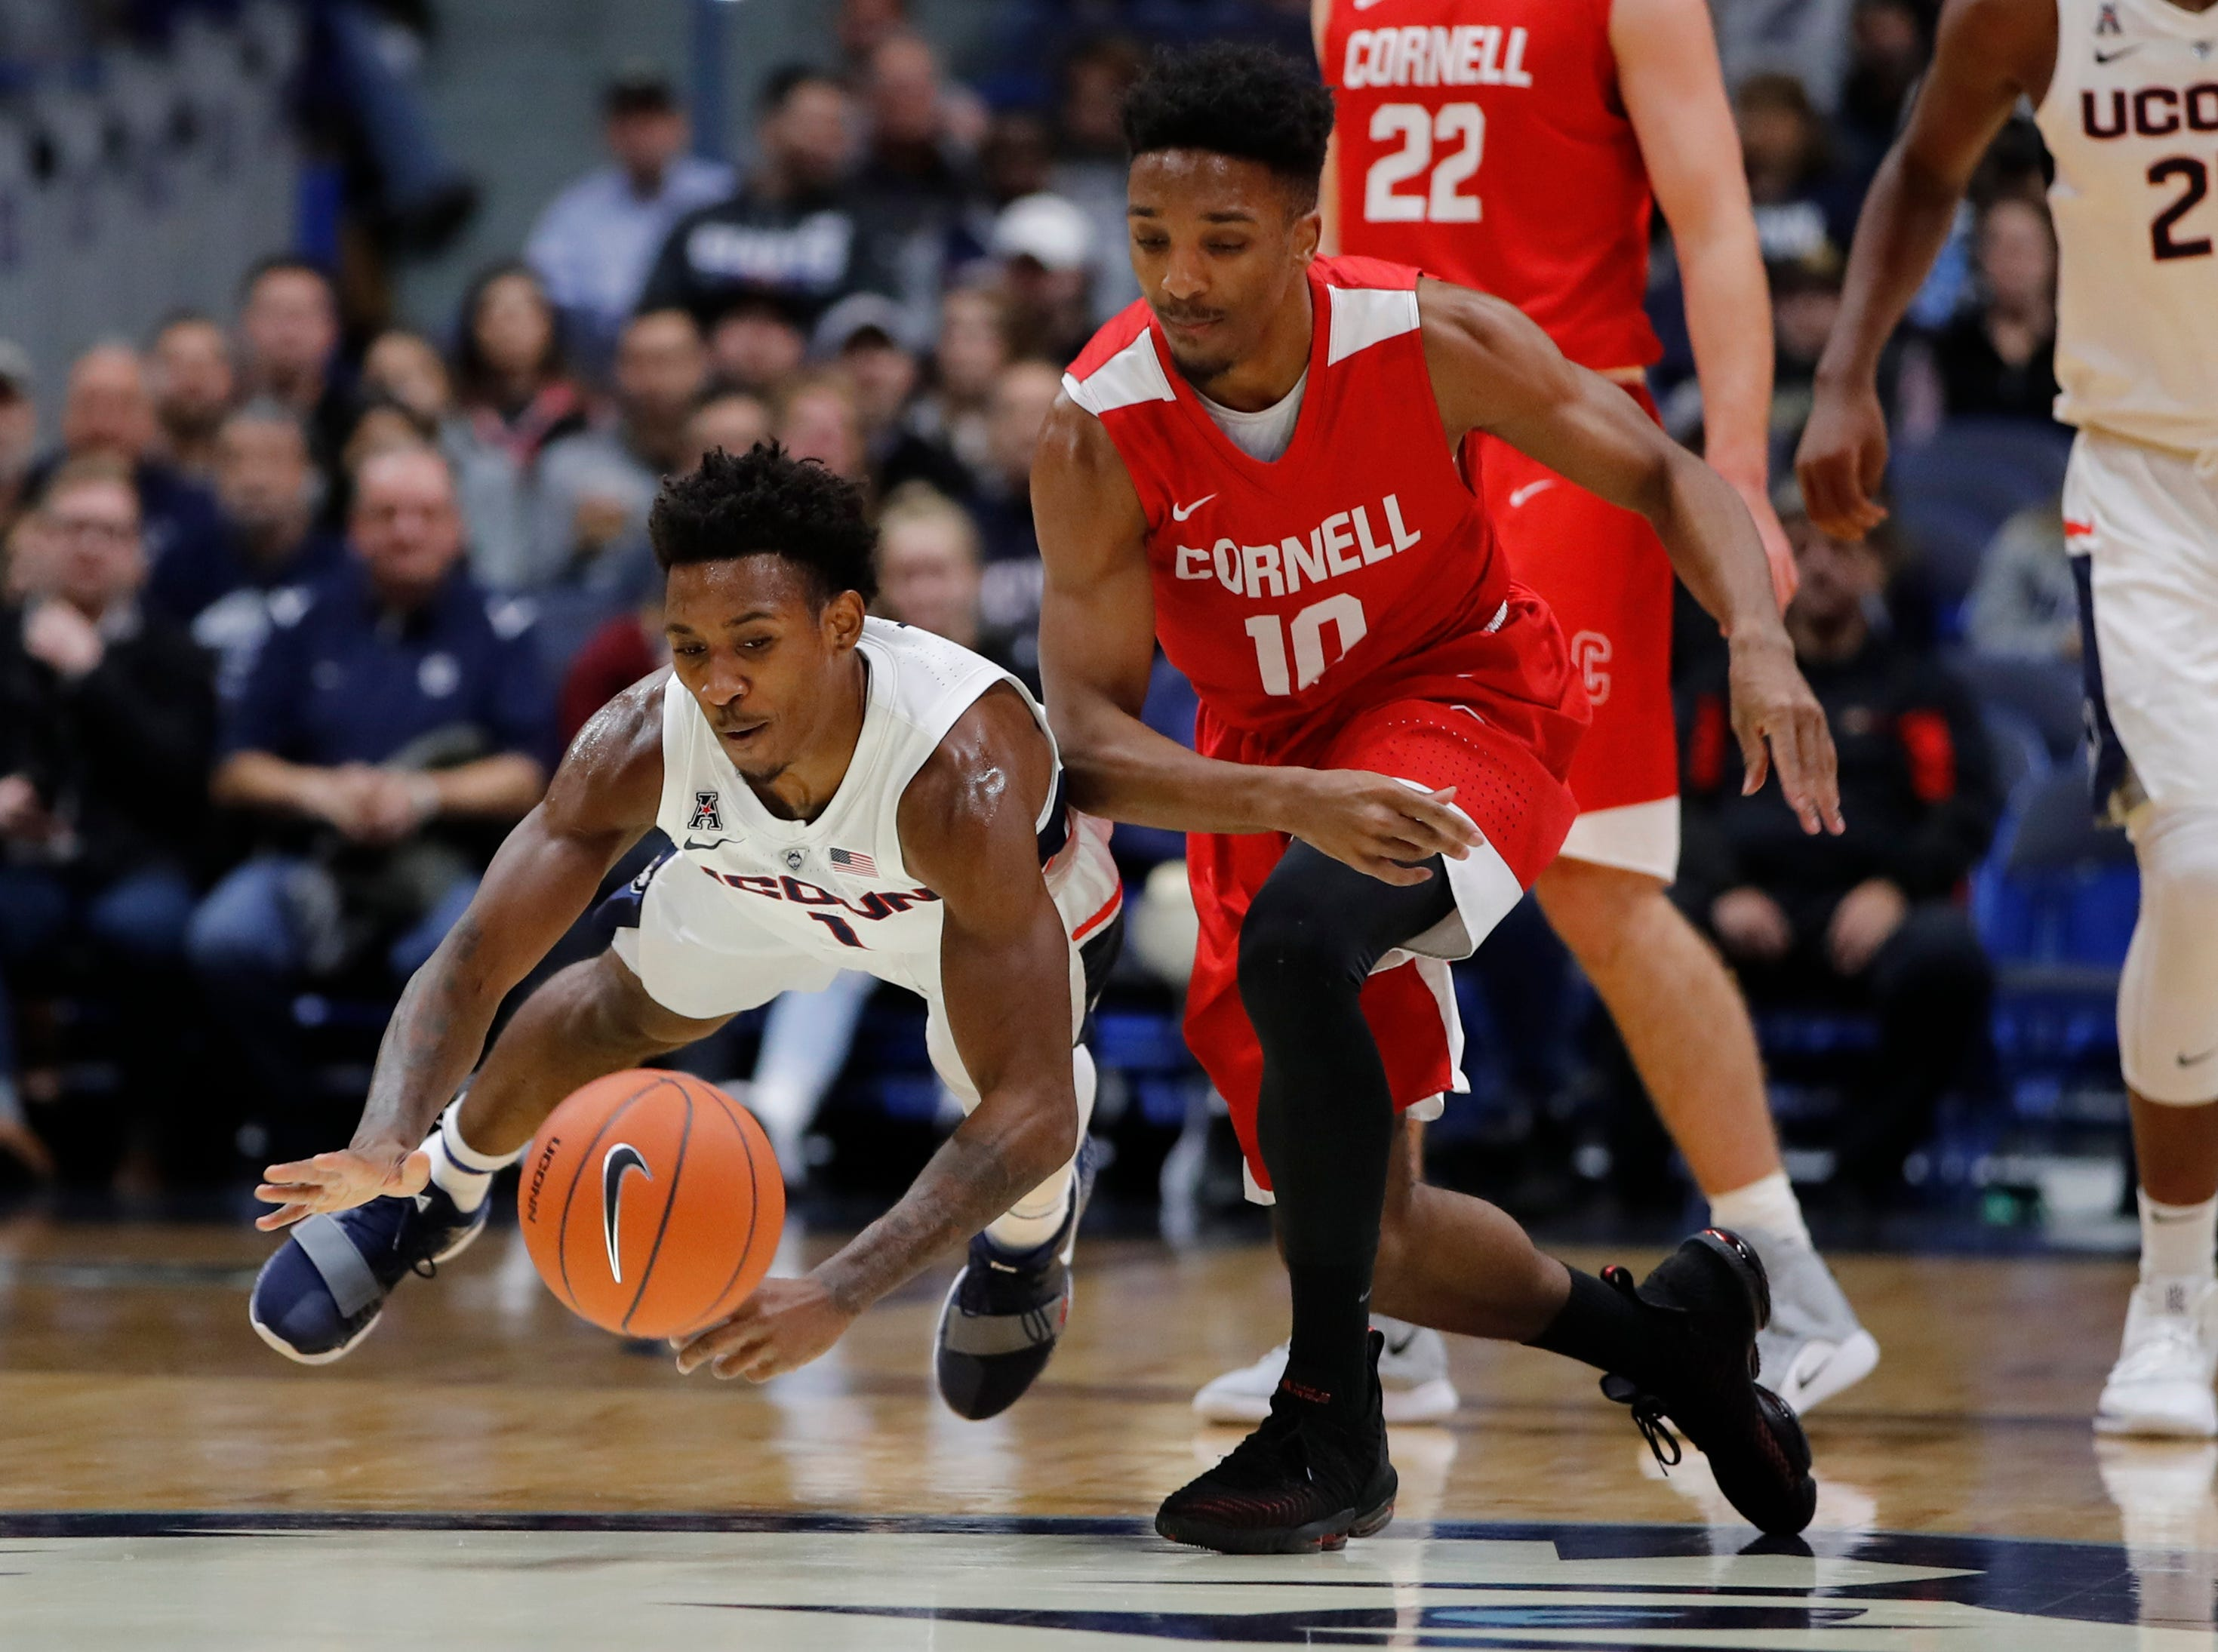 Nov 20, 2018; Storrs, CT, USA; Connecticut Huskies guard Christian Vital (1) and Cornell Big Red guard Matt Morgan (10) chase a loose ball in the first half at XL Center. Mandatory Credit: David Butler II-USA TODAY Sports